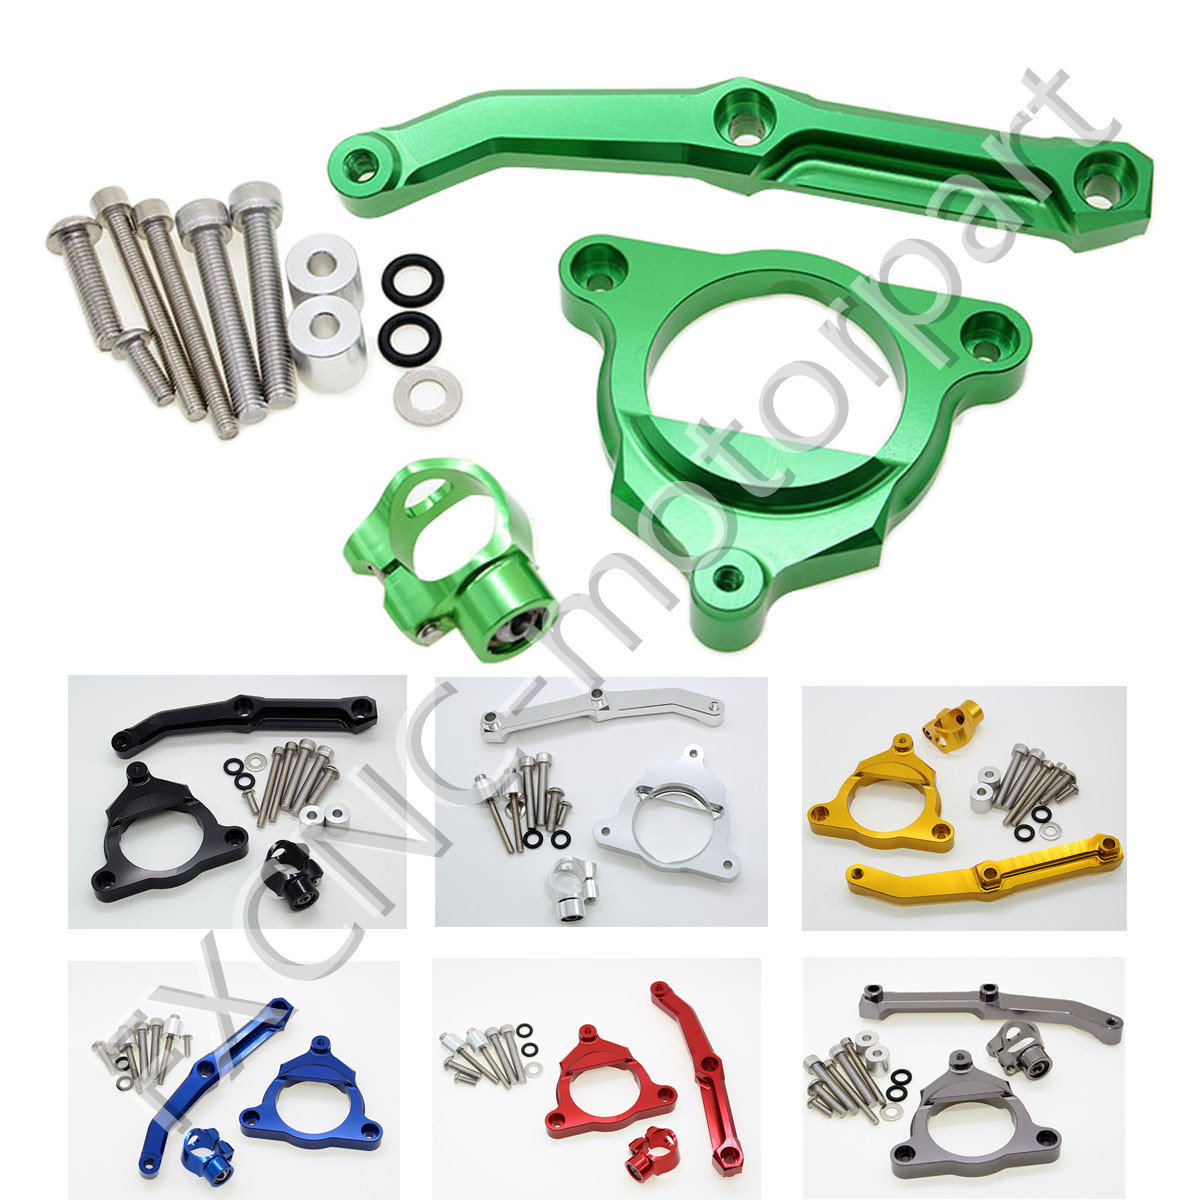 FXCNC Aluminum Steering Damper Stabilizer Bracket Mounting Support Kits 6 Colors Fit For KAWASAKI Z800 2013-2015 2013 2014 2015<br>